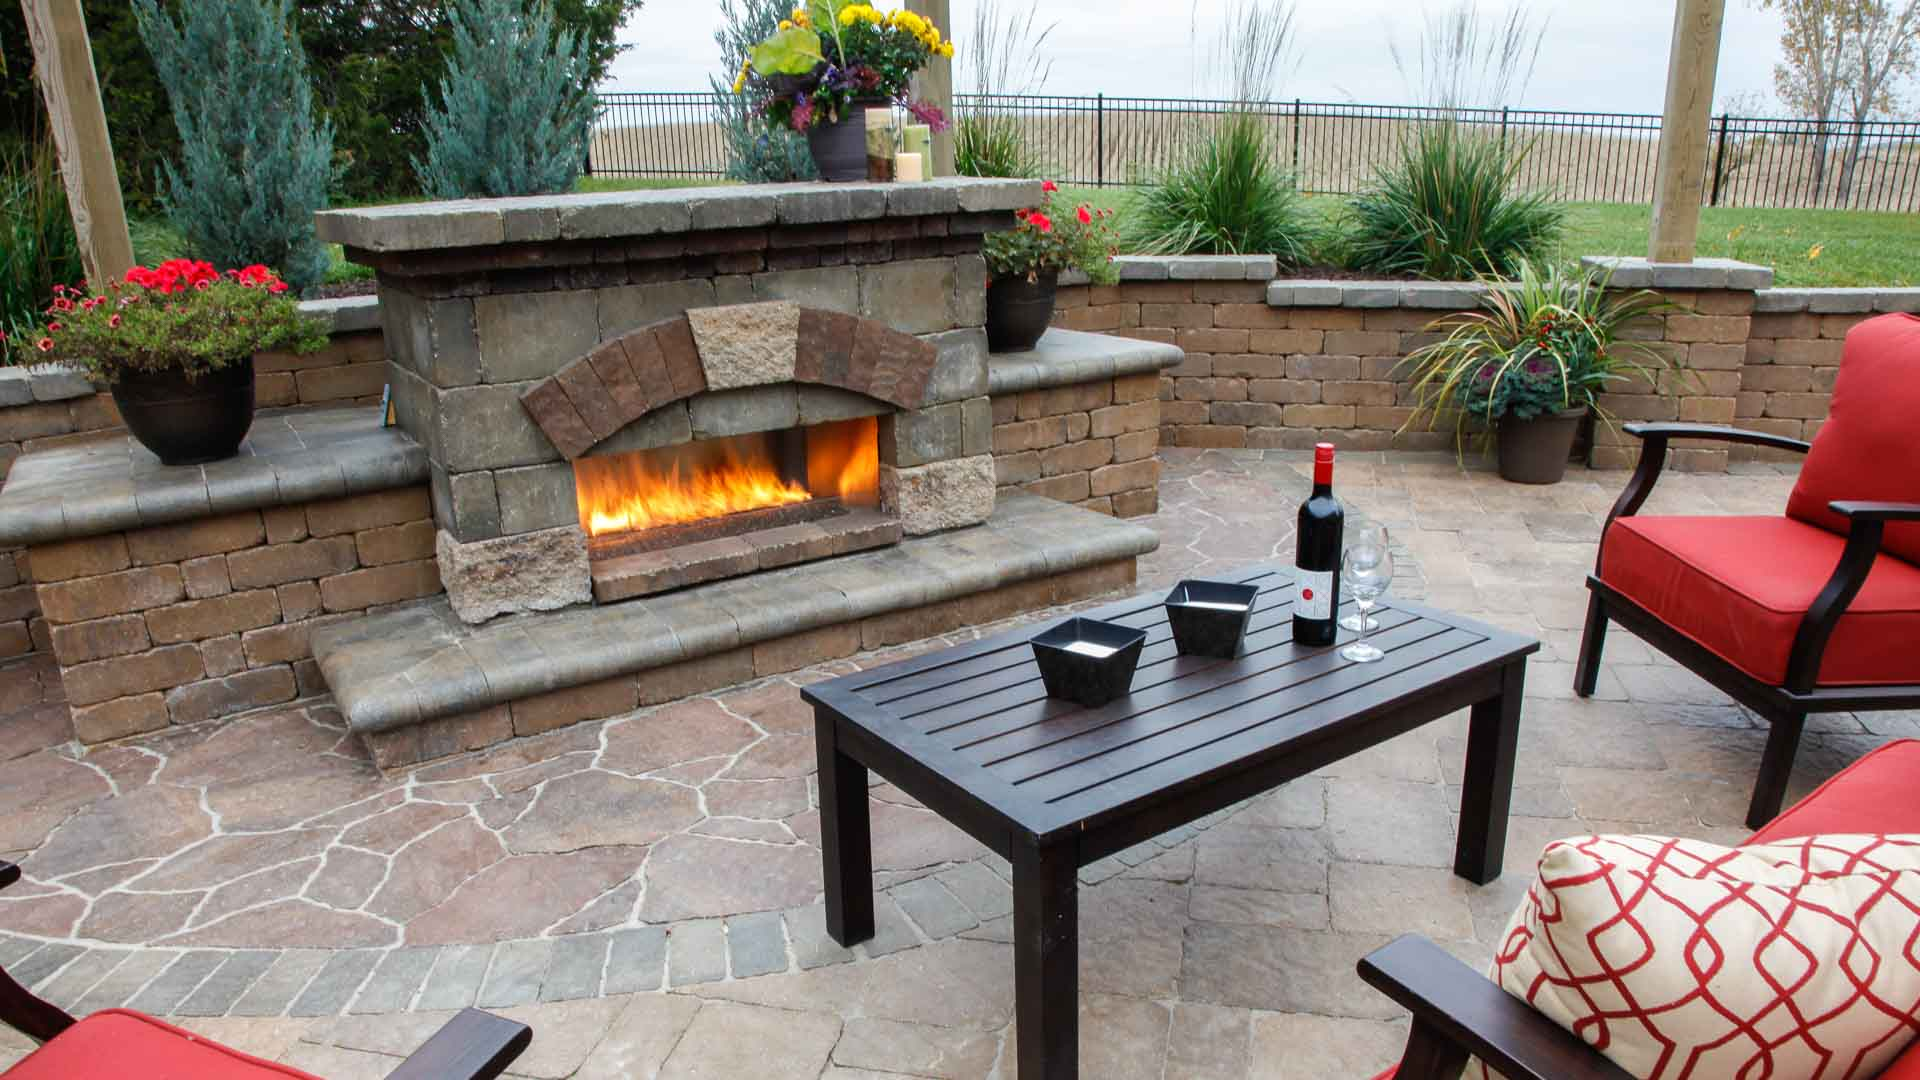 Forever Green Coralville Iowa patio fireplace landscaping iowa city outdoor living